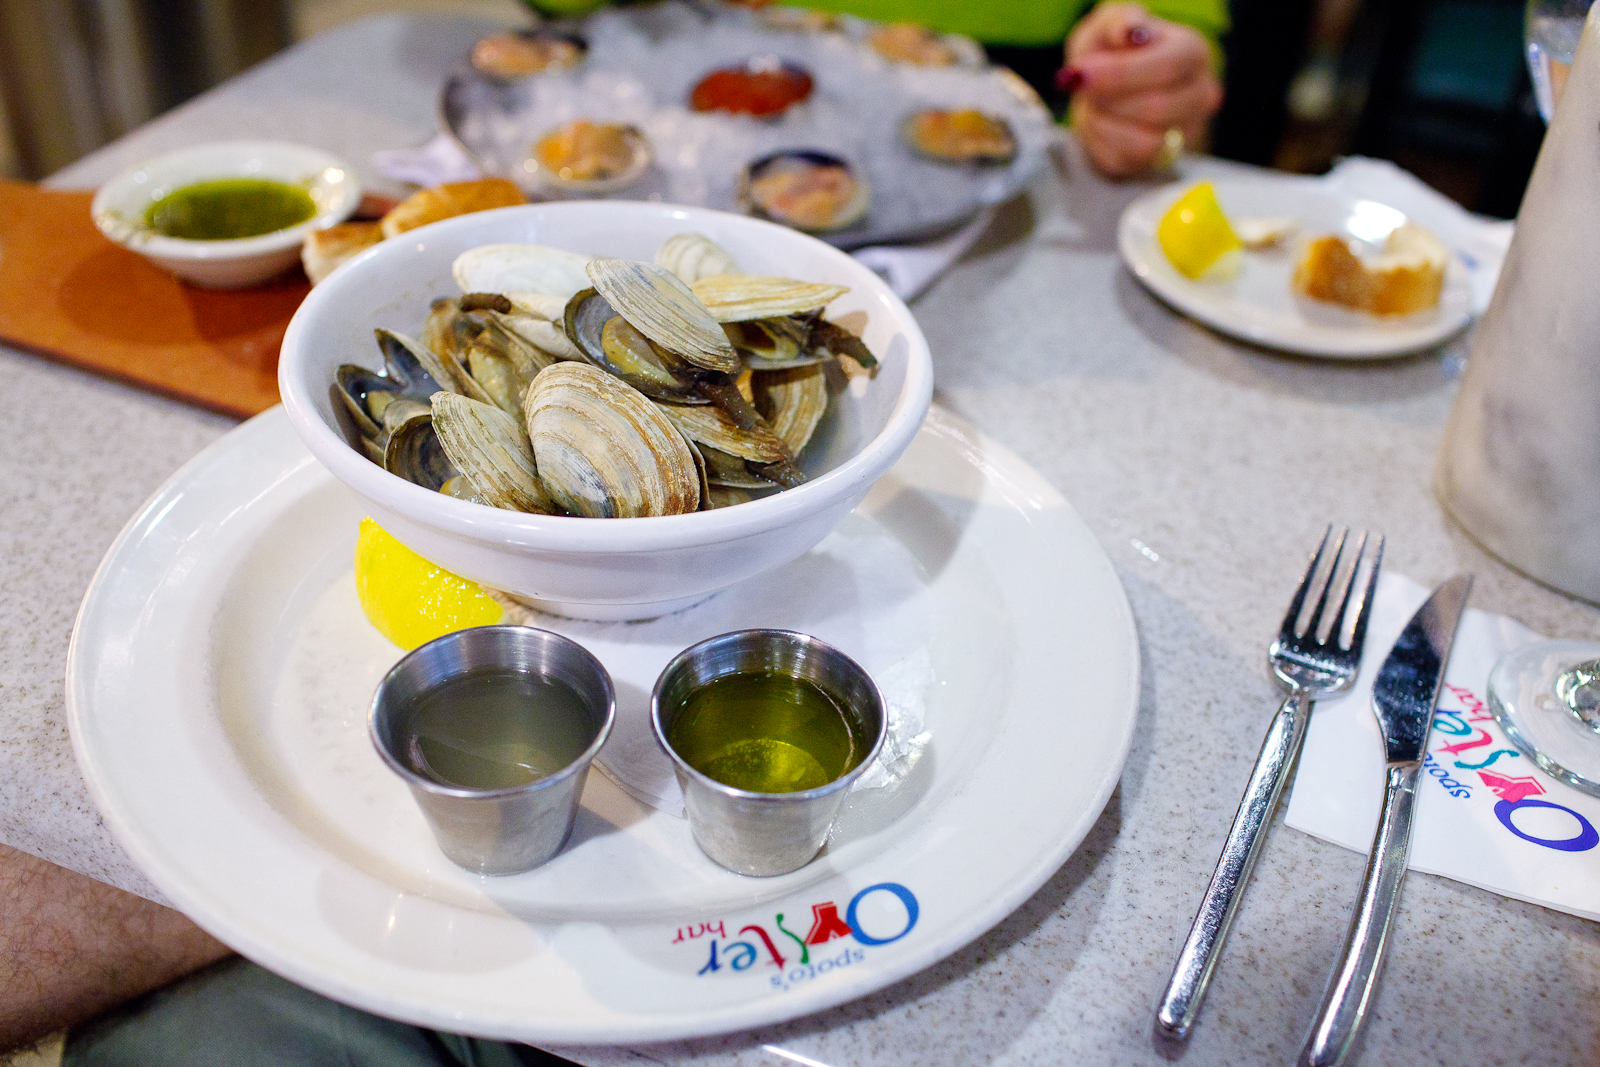 Maine steamers, ipswich clams, broth, butter ($12.95)